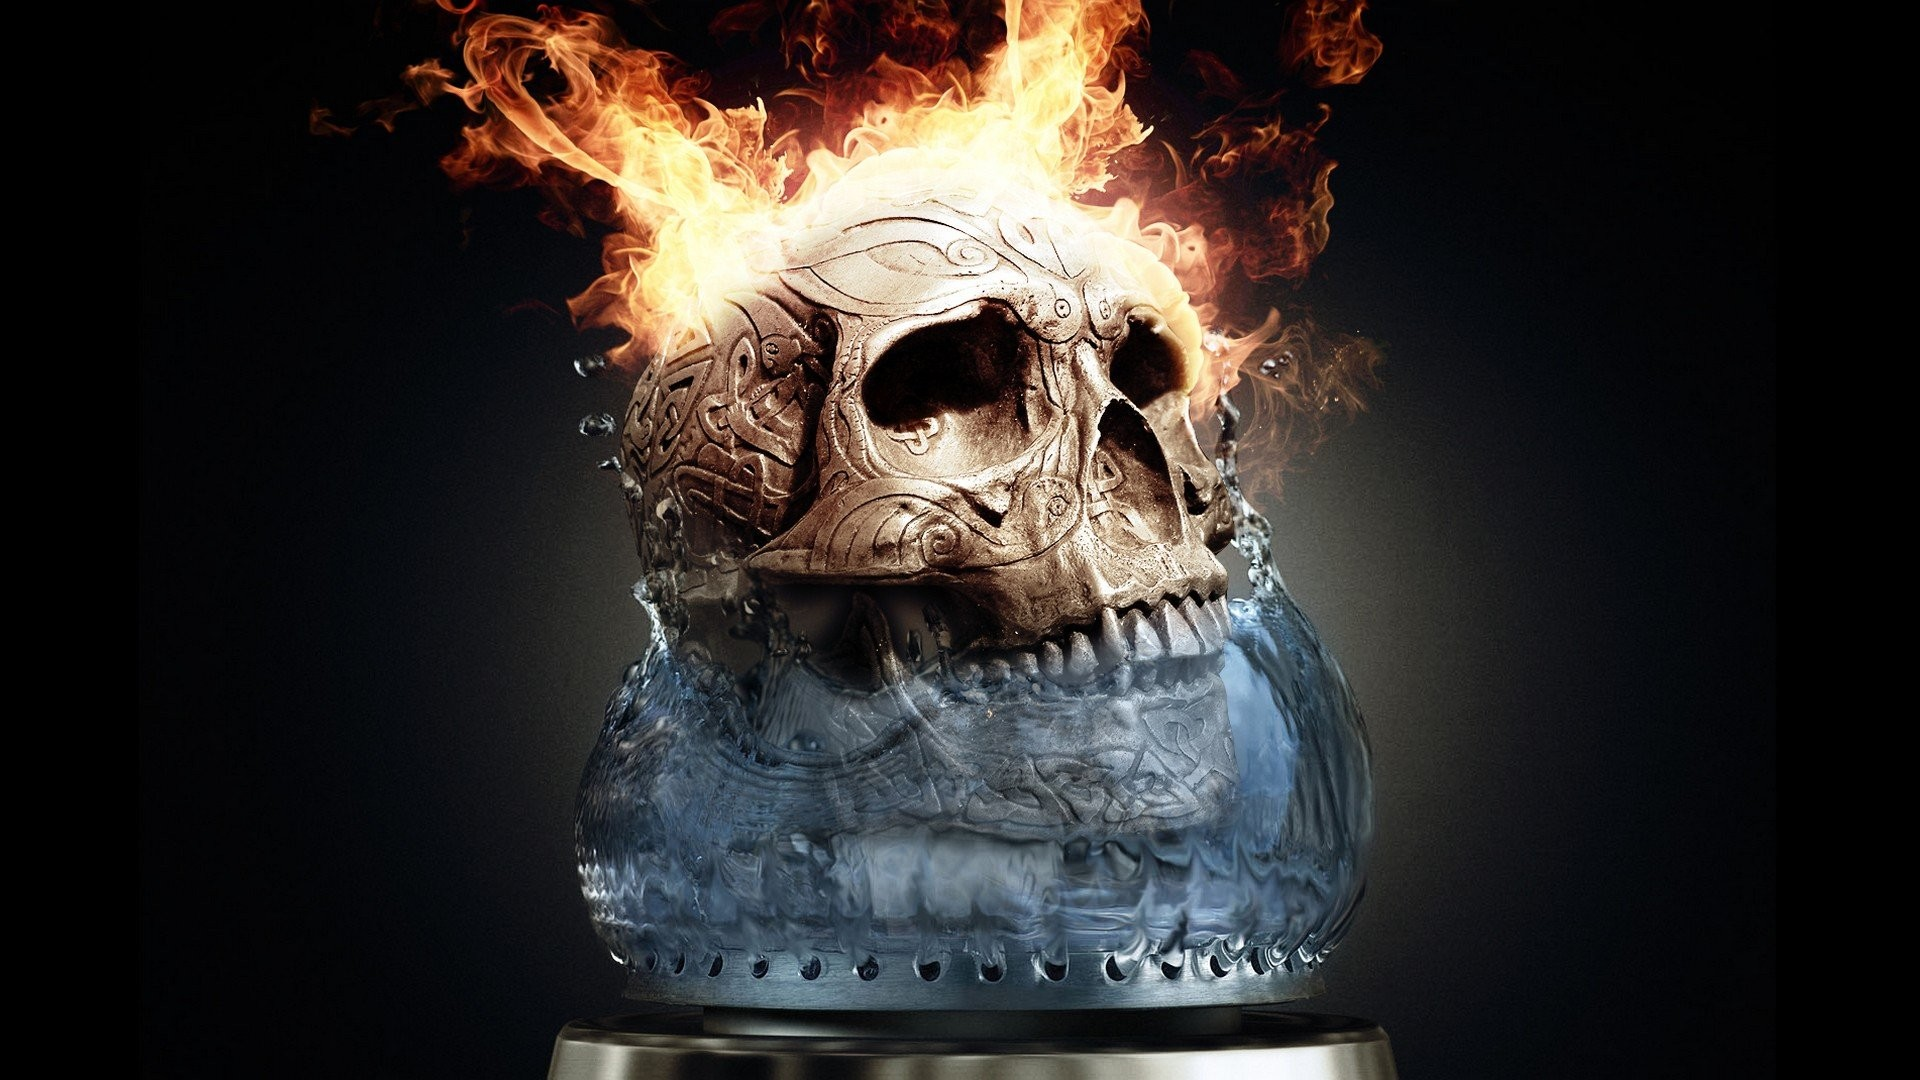 Skull Fire Wallpaper 61 Images